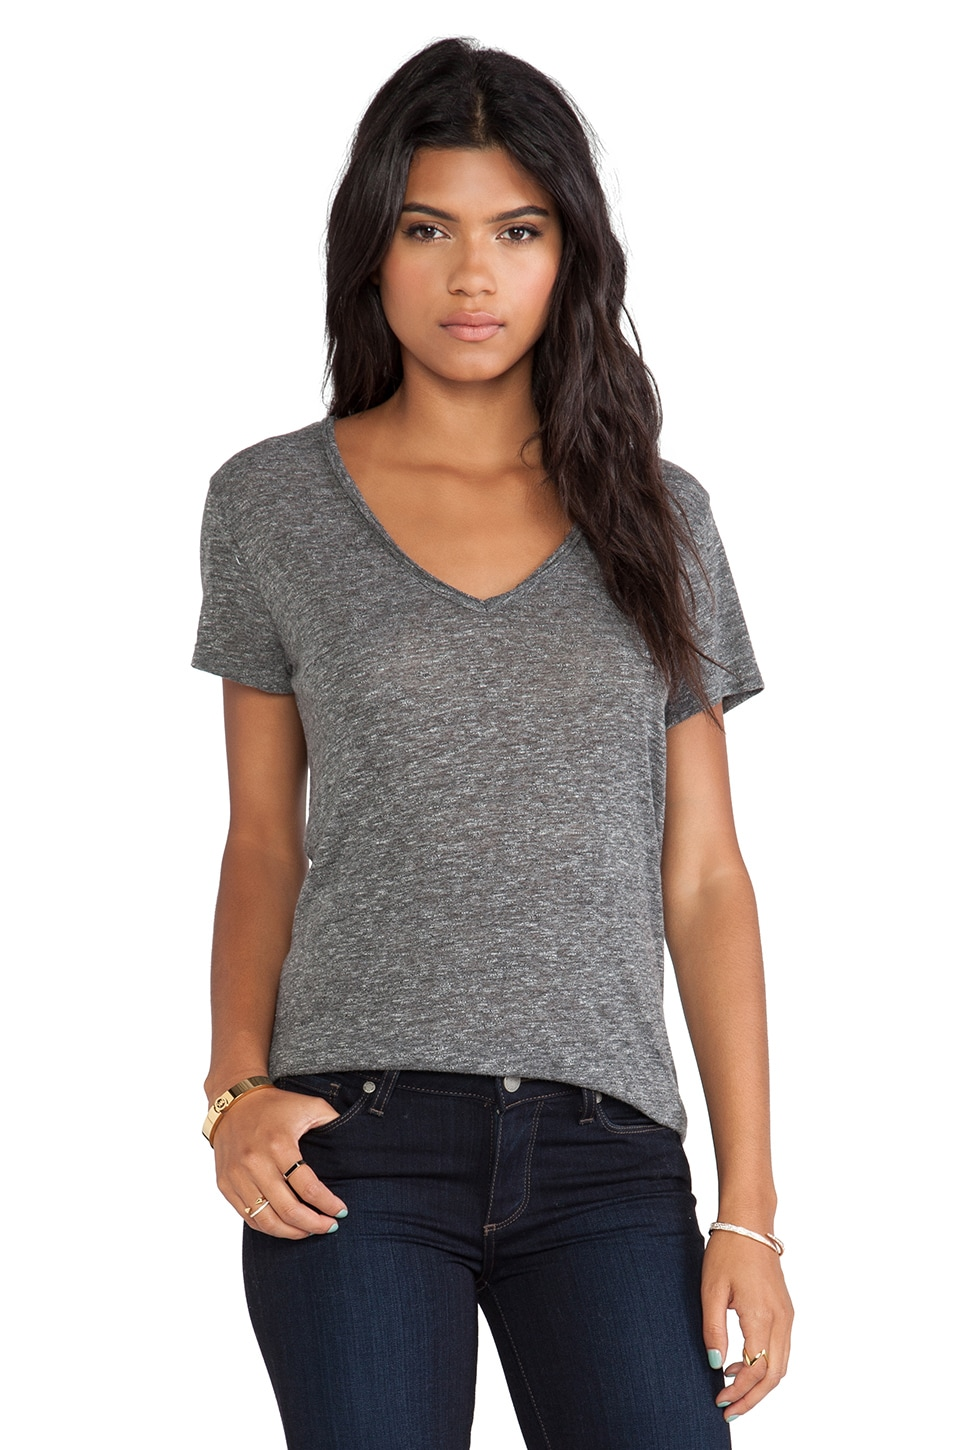 Joie Naeva V Neck Tee in Heather Dark Charcoal